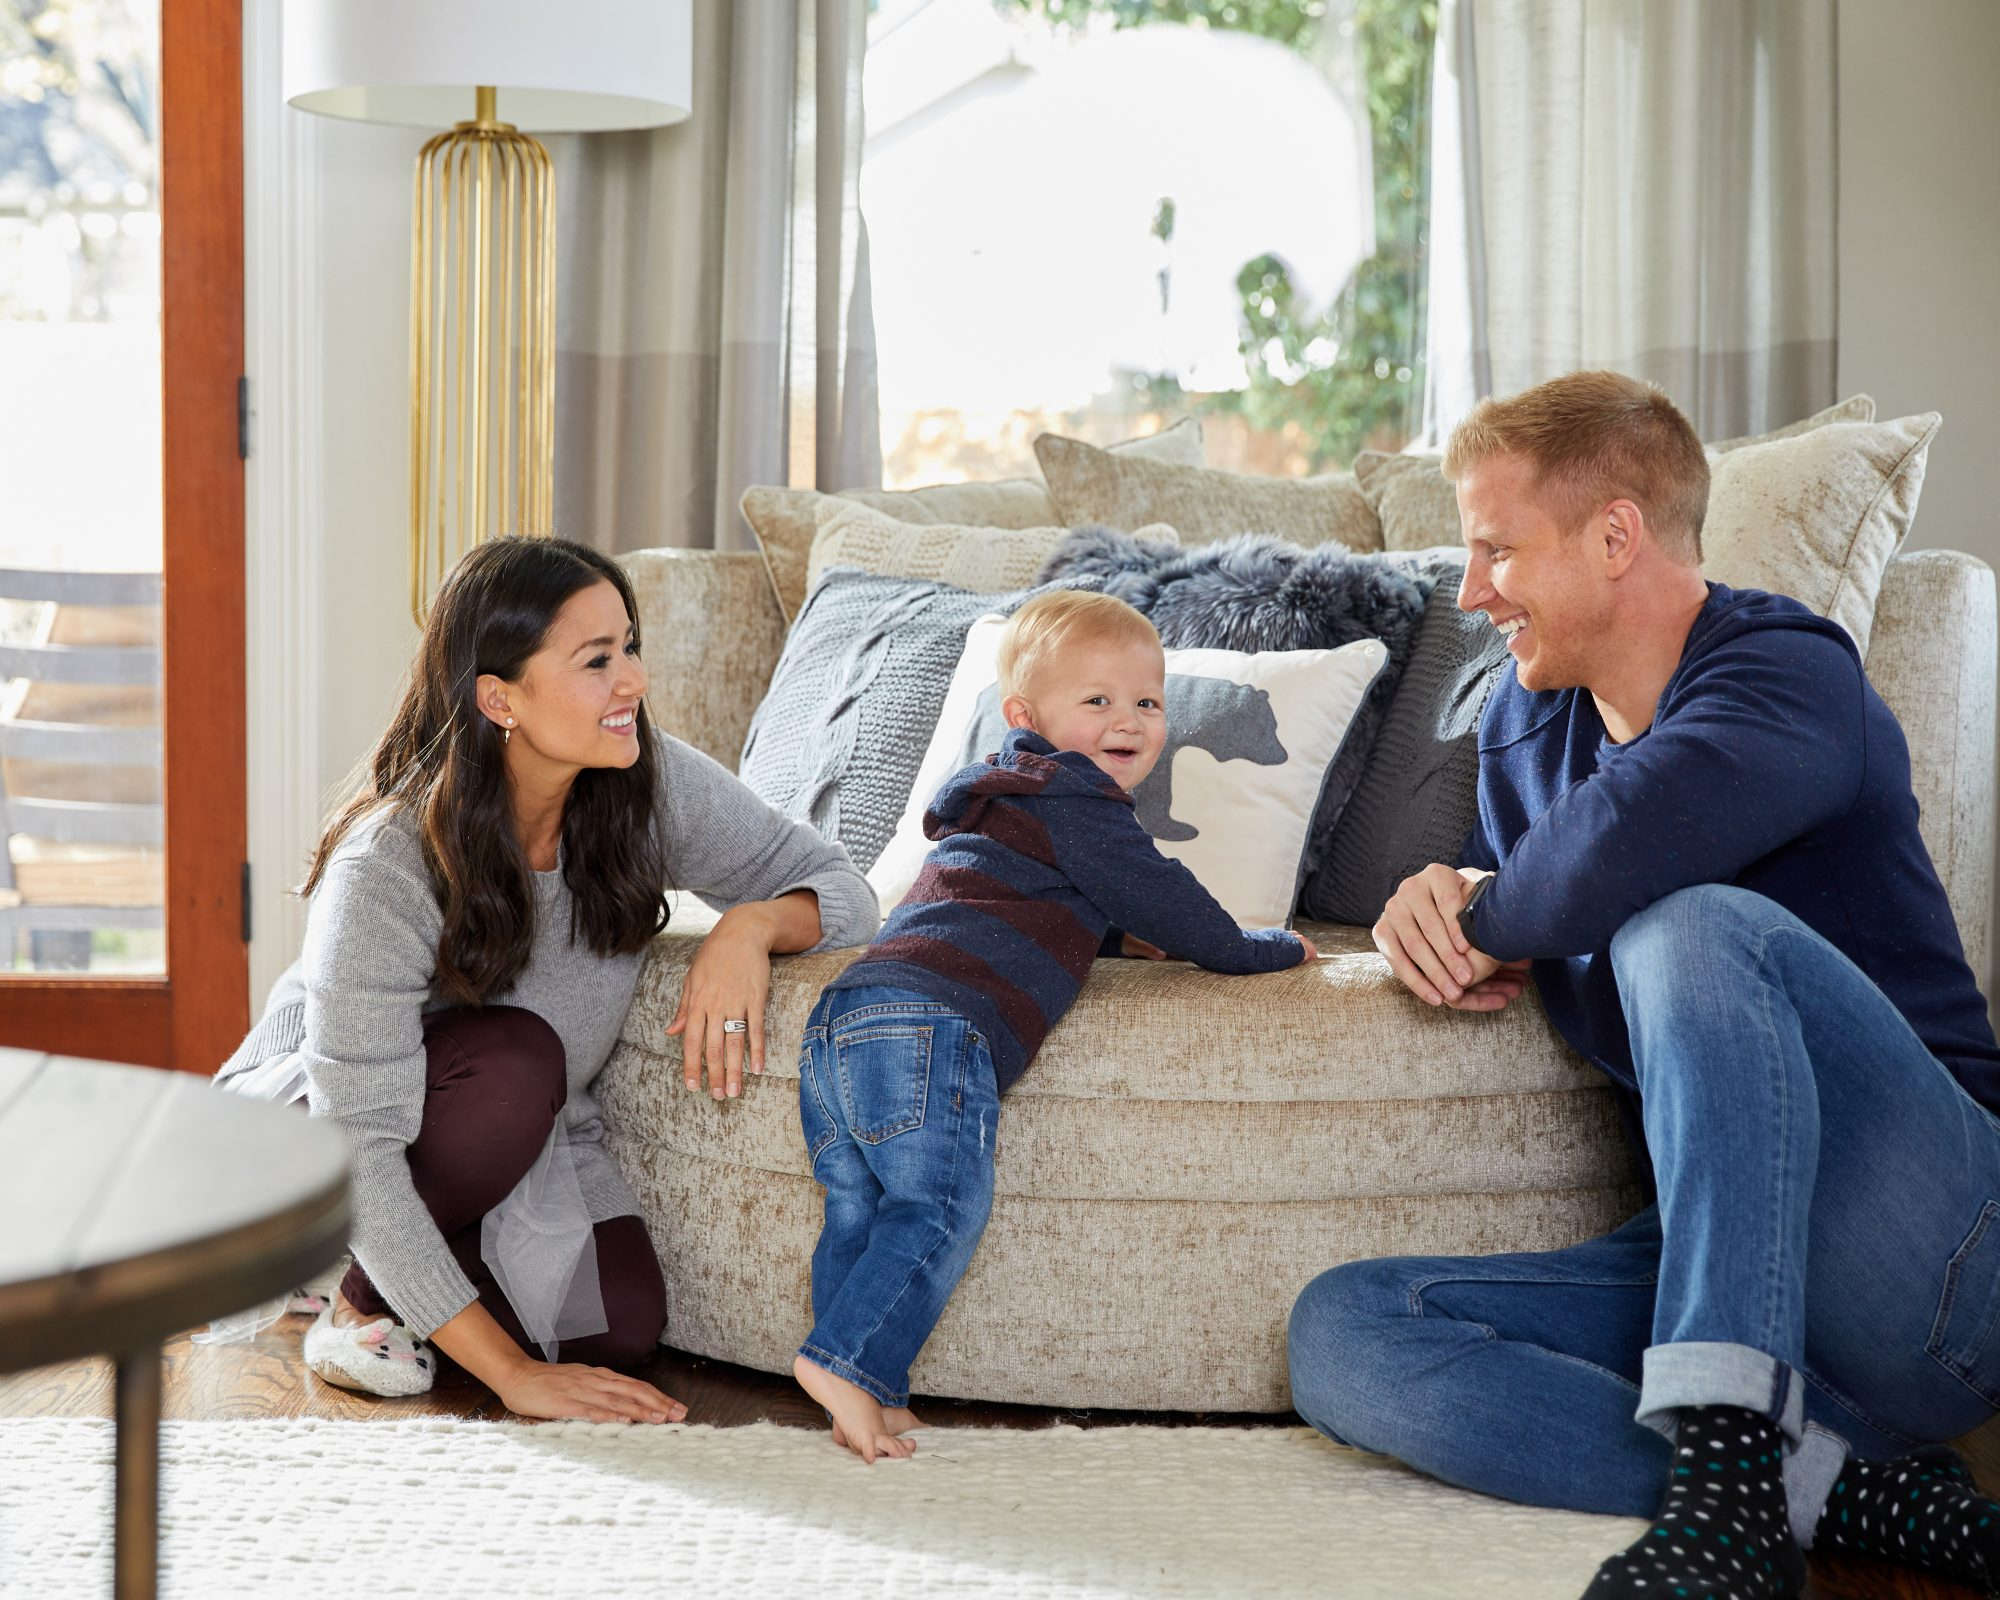 2017-11-02 Wayfair Catherine Sean Lowe m2030